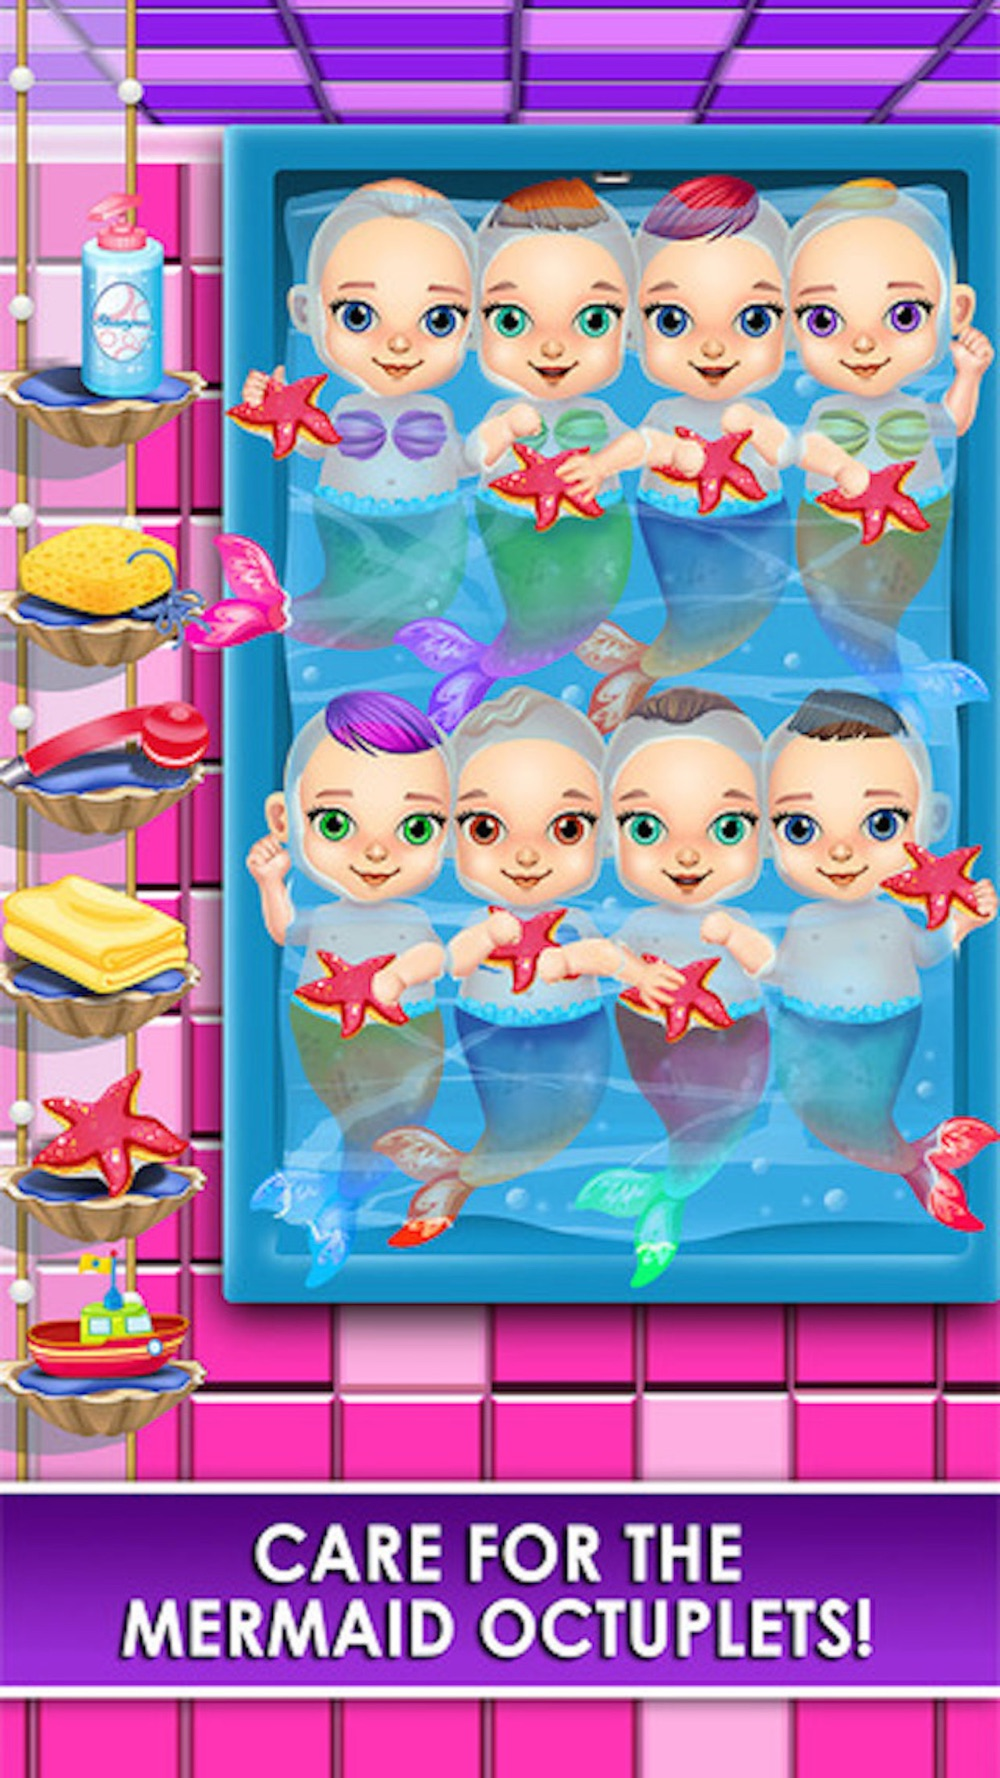 Mermaid Newborn Babies Care - Mommy's Octuplets Baby Salon Doctor Game hack tool